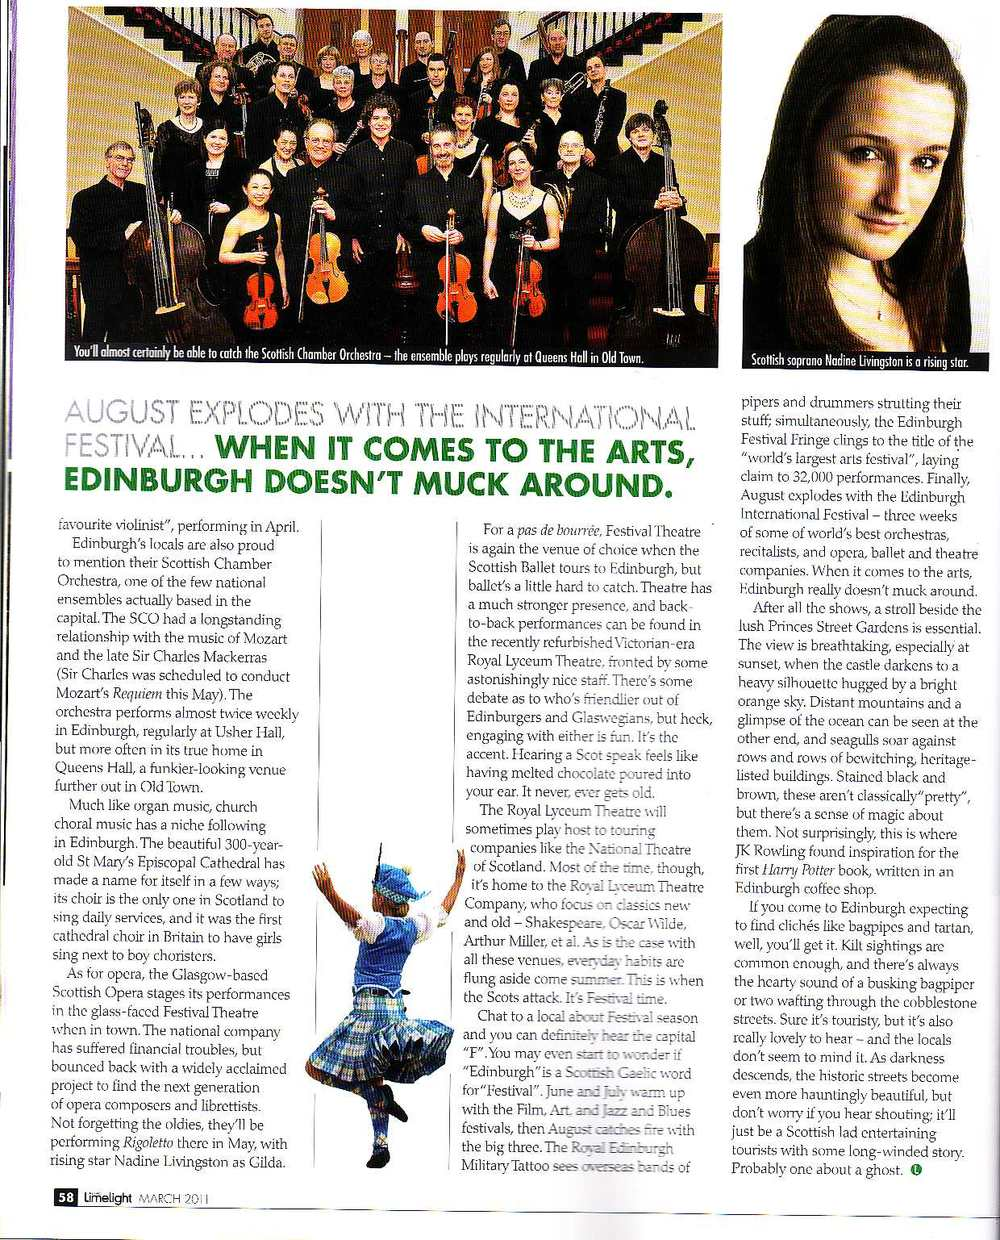 Wendy Lang Edinburgh article Limelight March 2011 p2